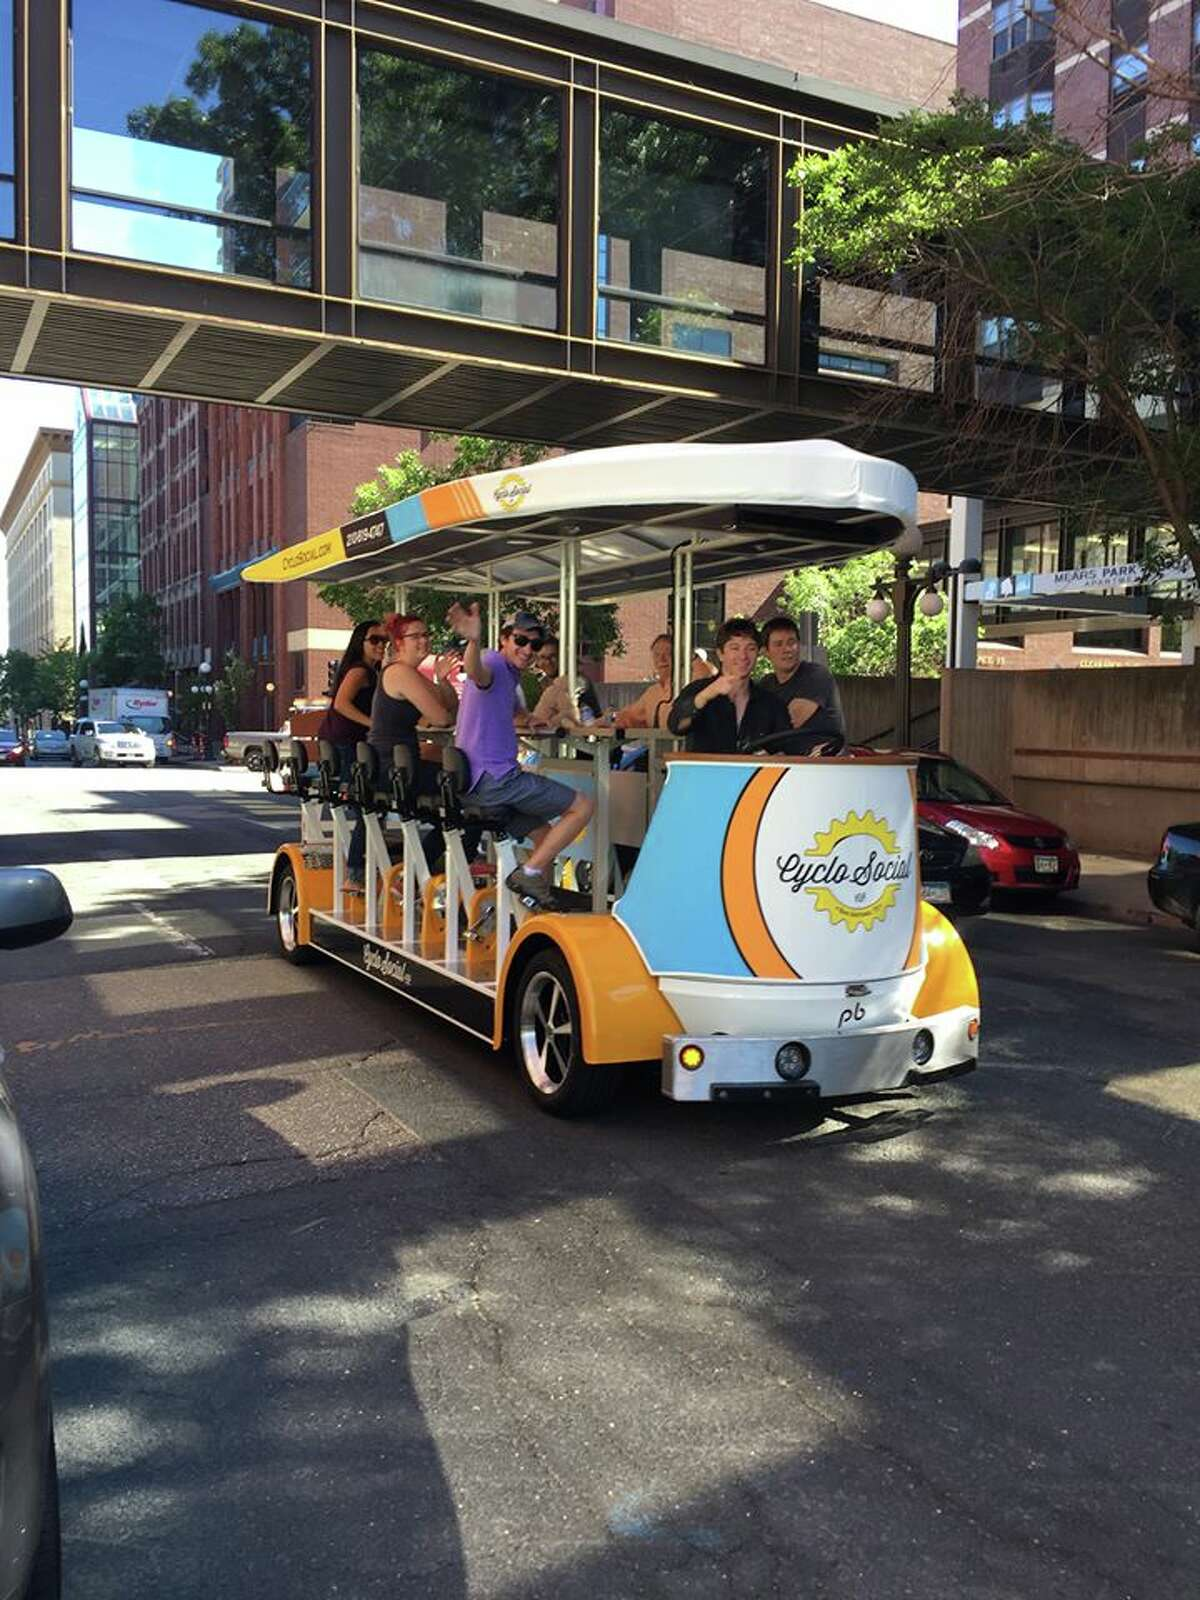 The San Antonio bar scene will go mobile this month when CycloSocial Co. rolls out on August 20, offering the chance for revelers to sip and spin.